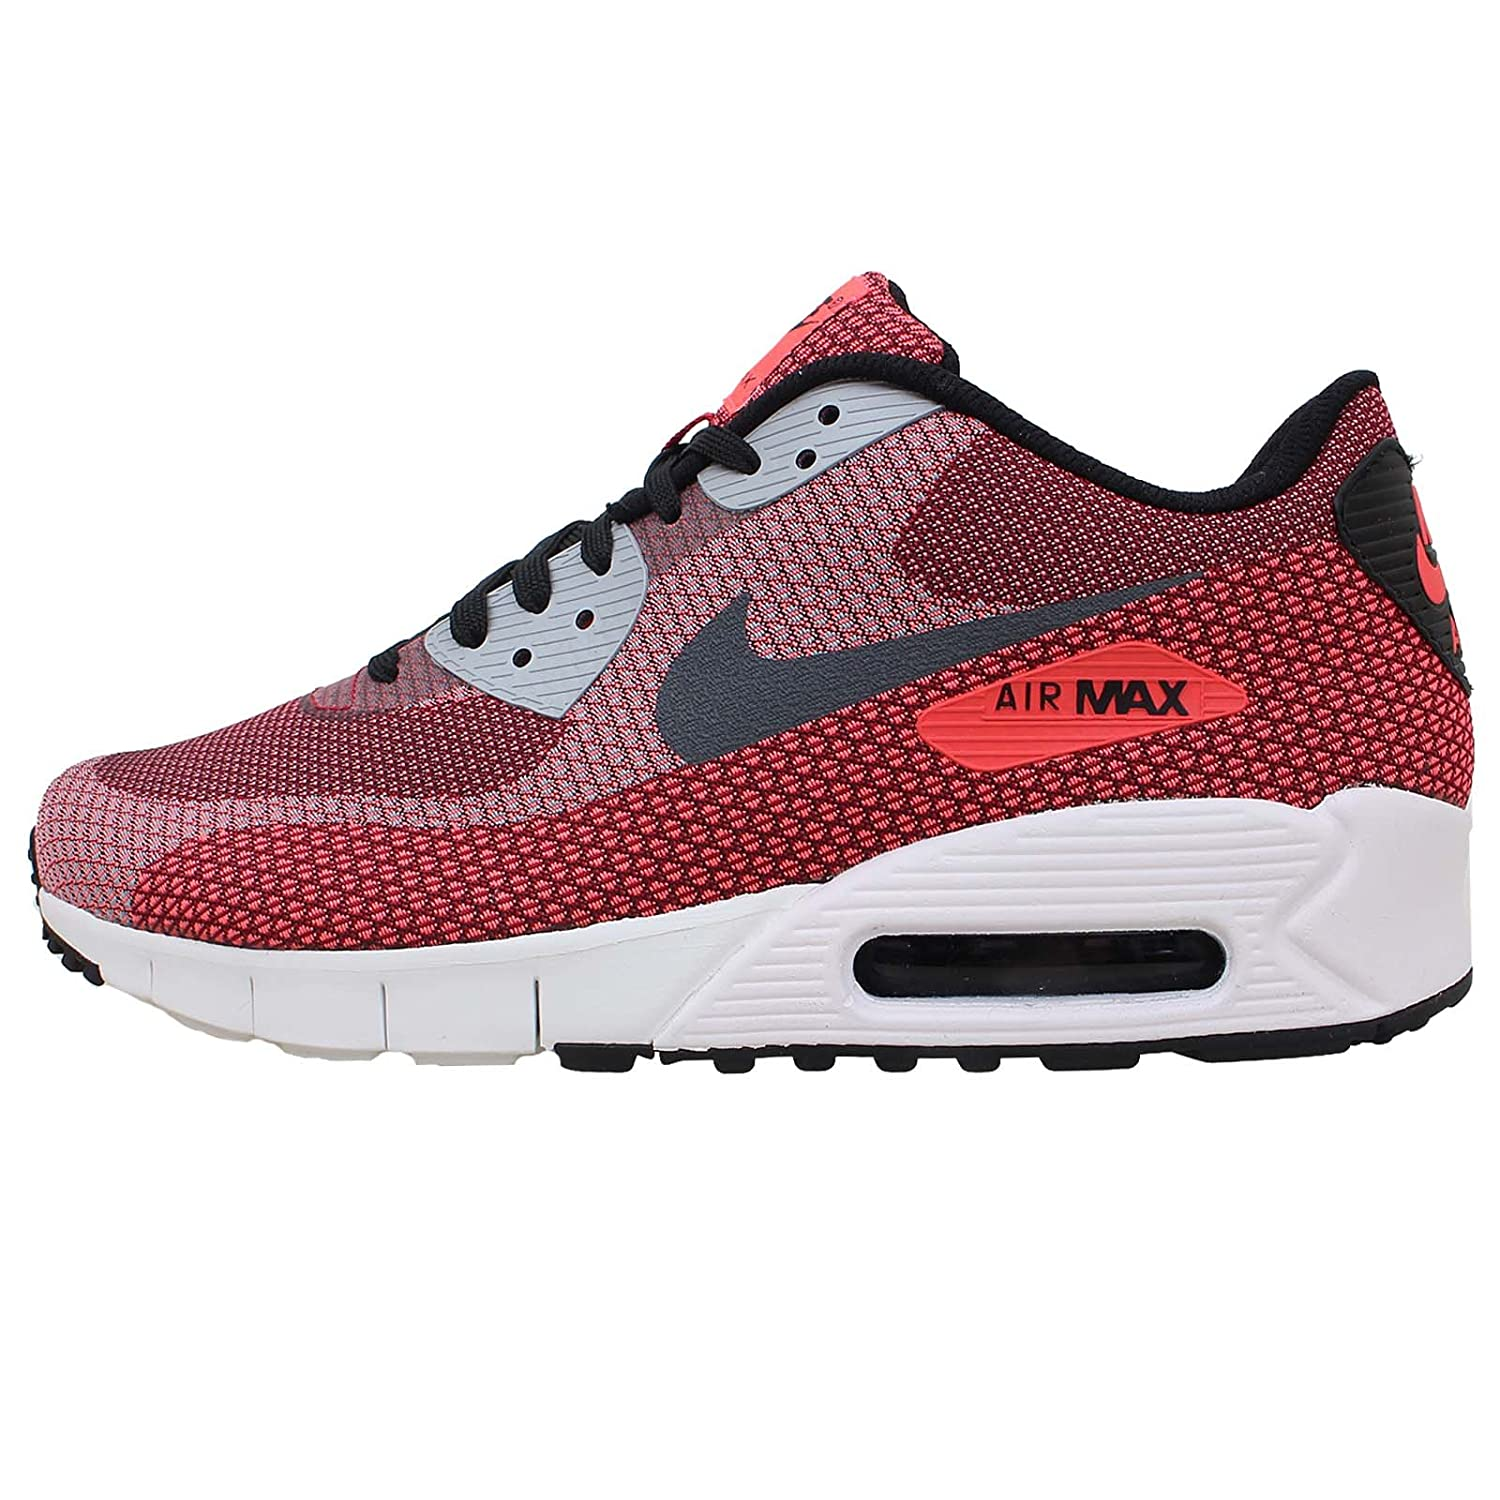 brand new eb5e8 88ab0 Nike Air Max 90 JCRD: Amazon.co.uk: Shoes & Bags